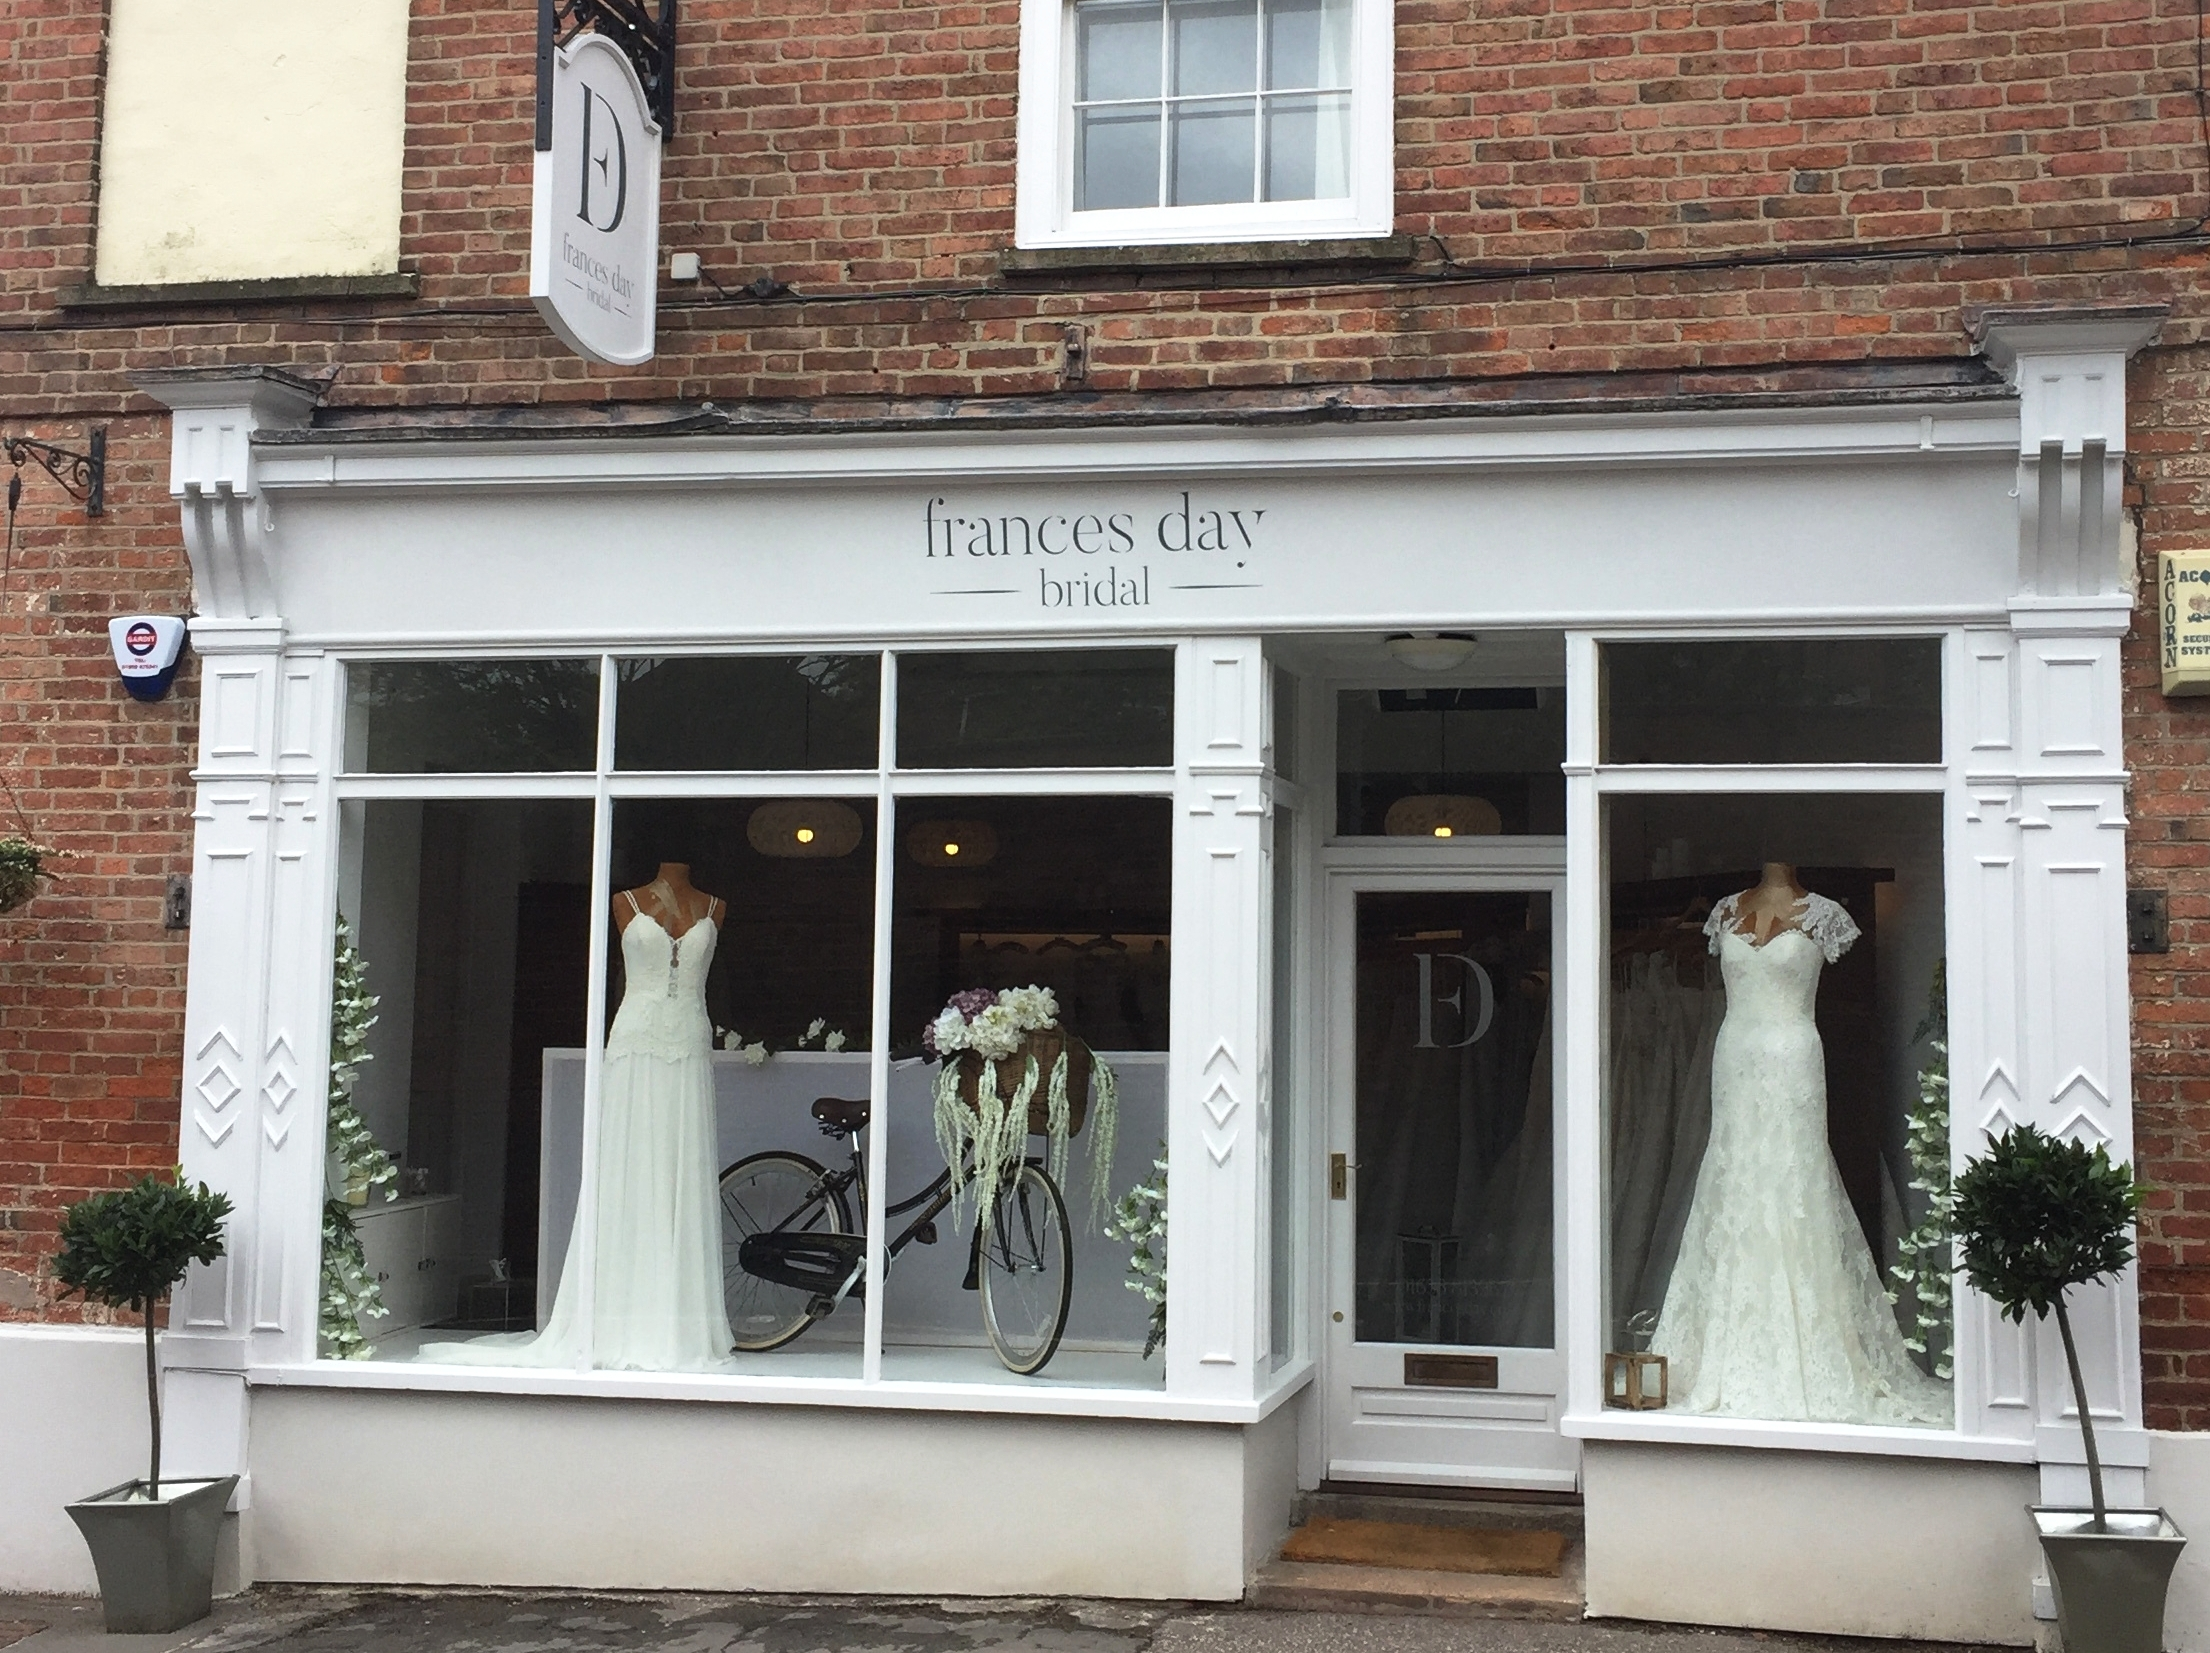 The New Frances Day Bridal